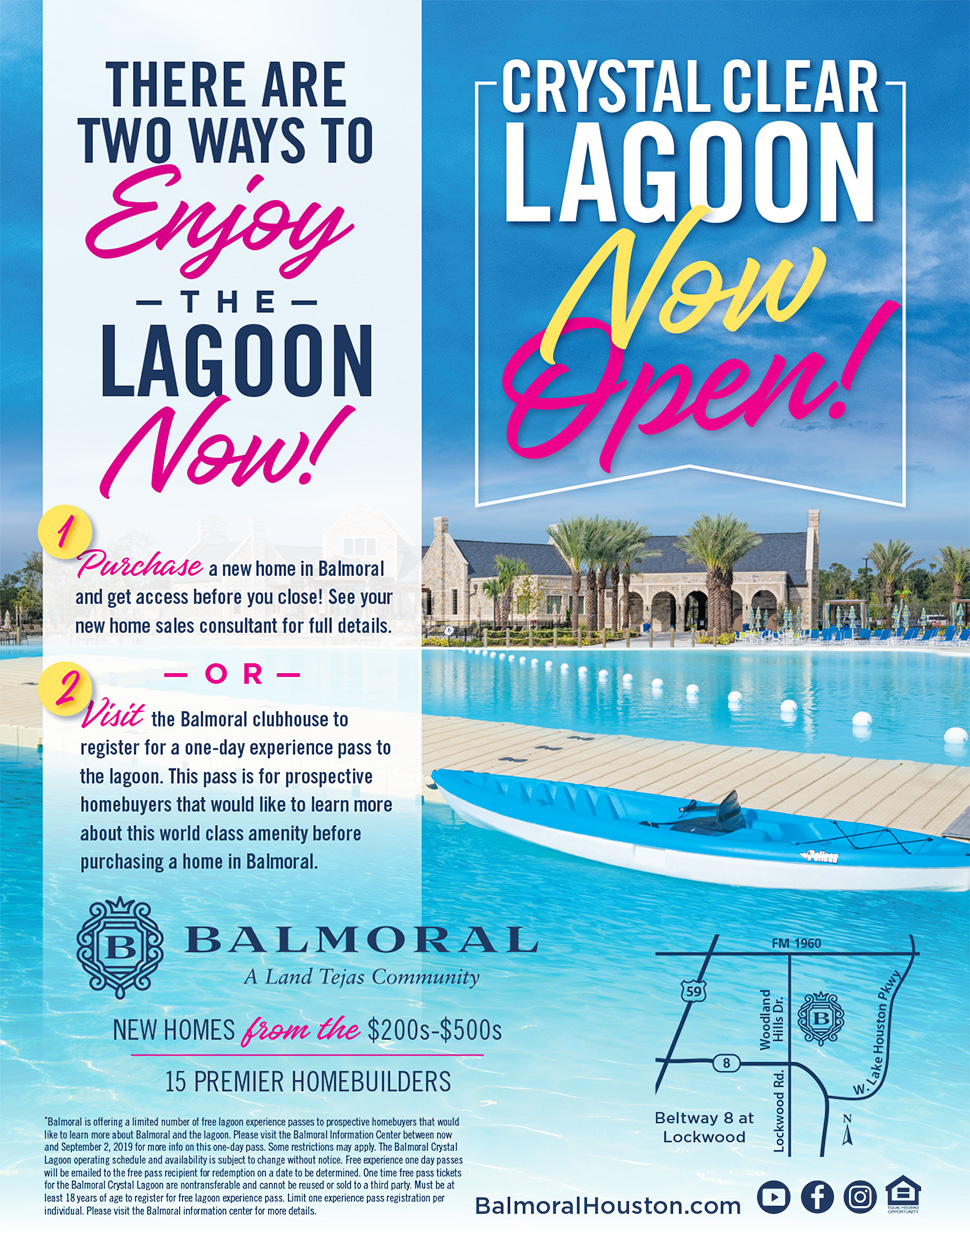 Enjoy the Lagoon Now!